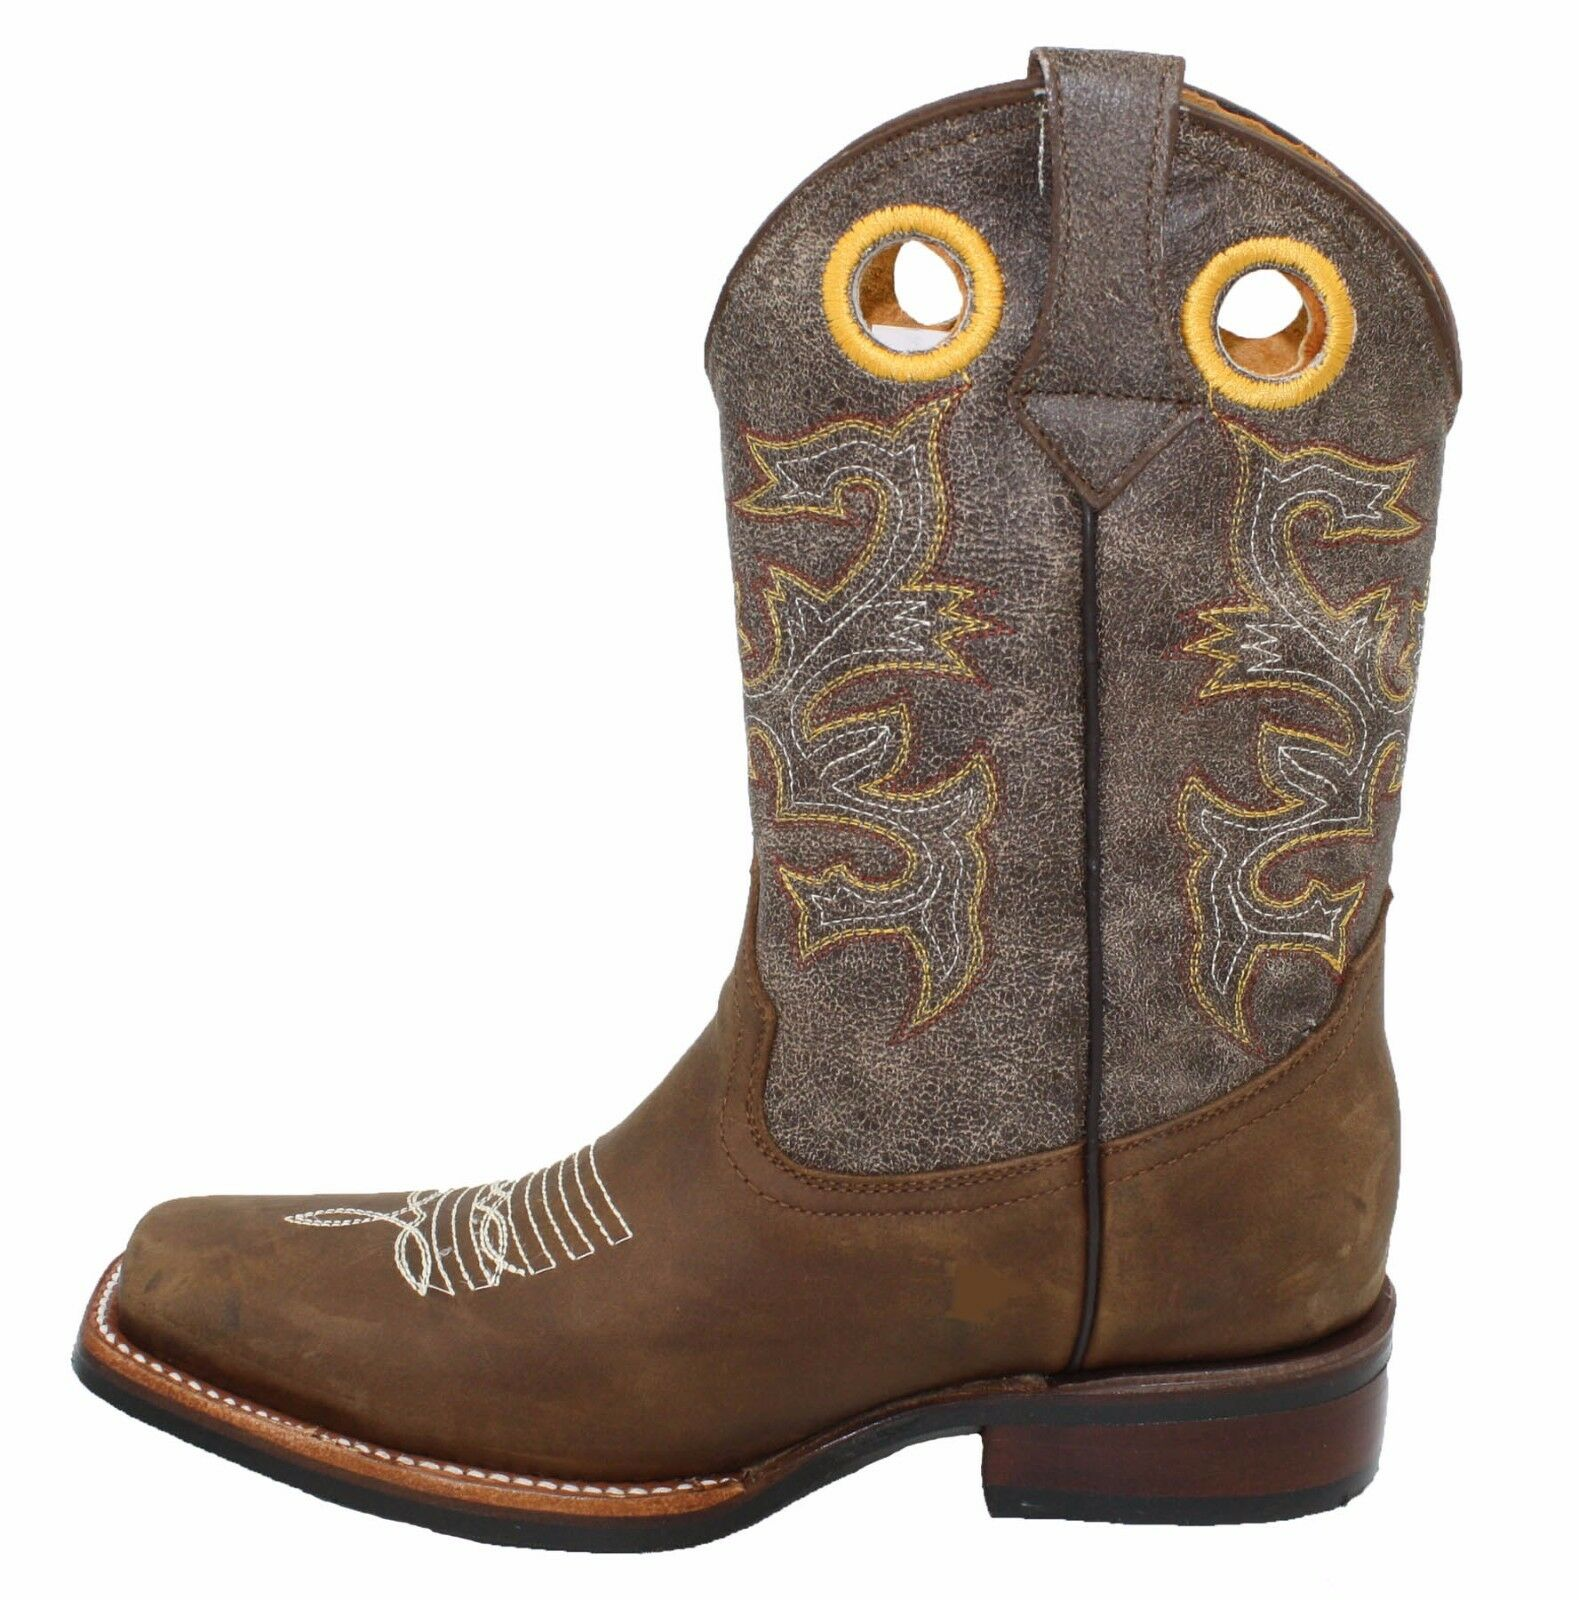 Genuine rodeo leather ladies cowboy western rodeo Genuine decorative shaft boots best prices 32b2bf